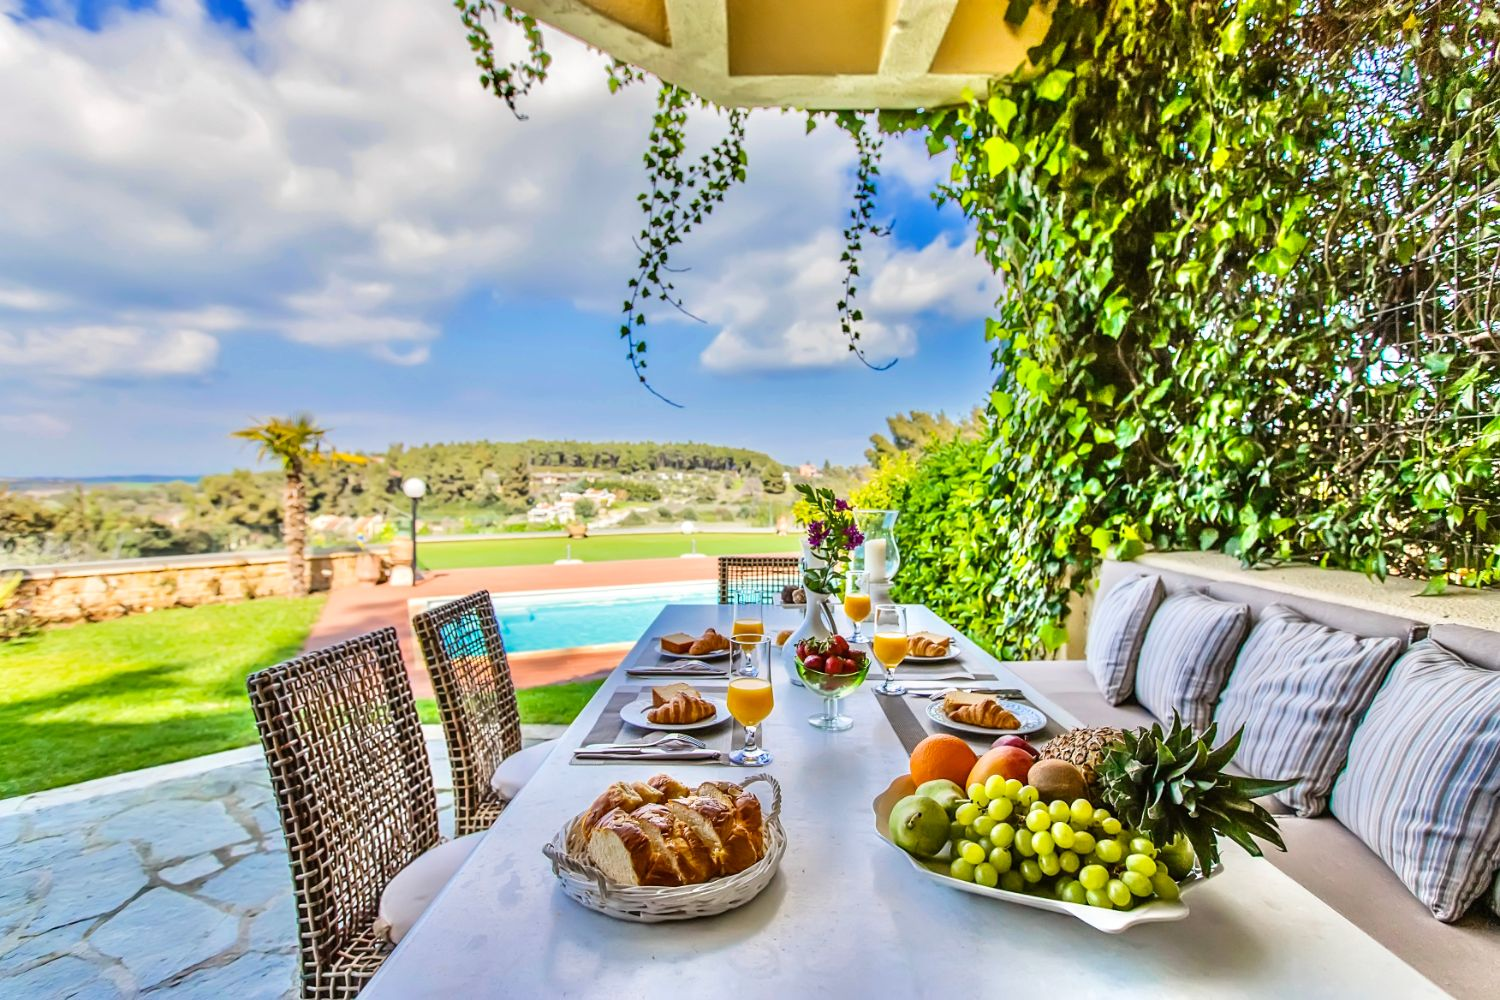 Outdoor dining area with pool view